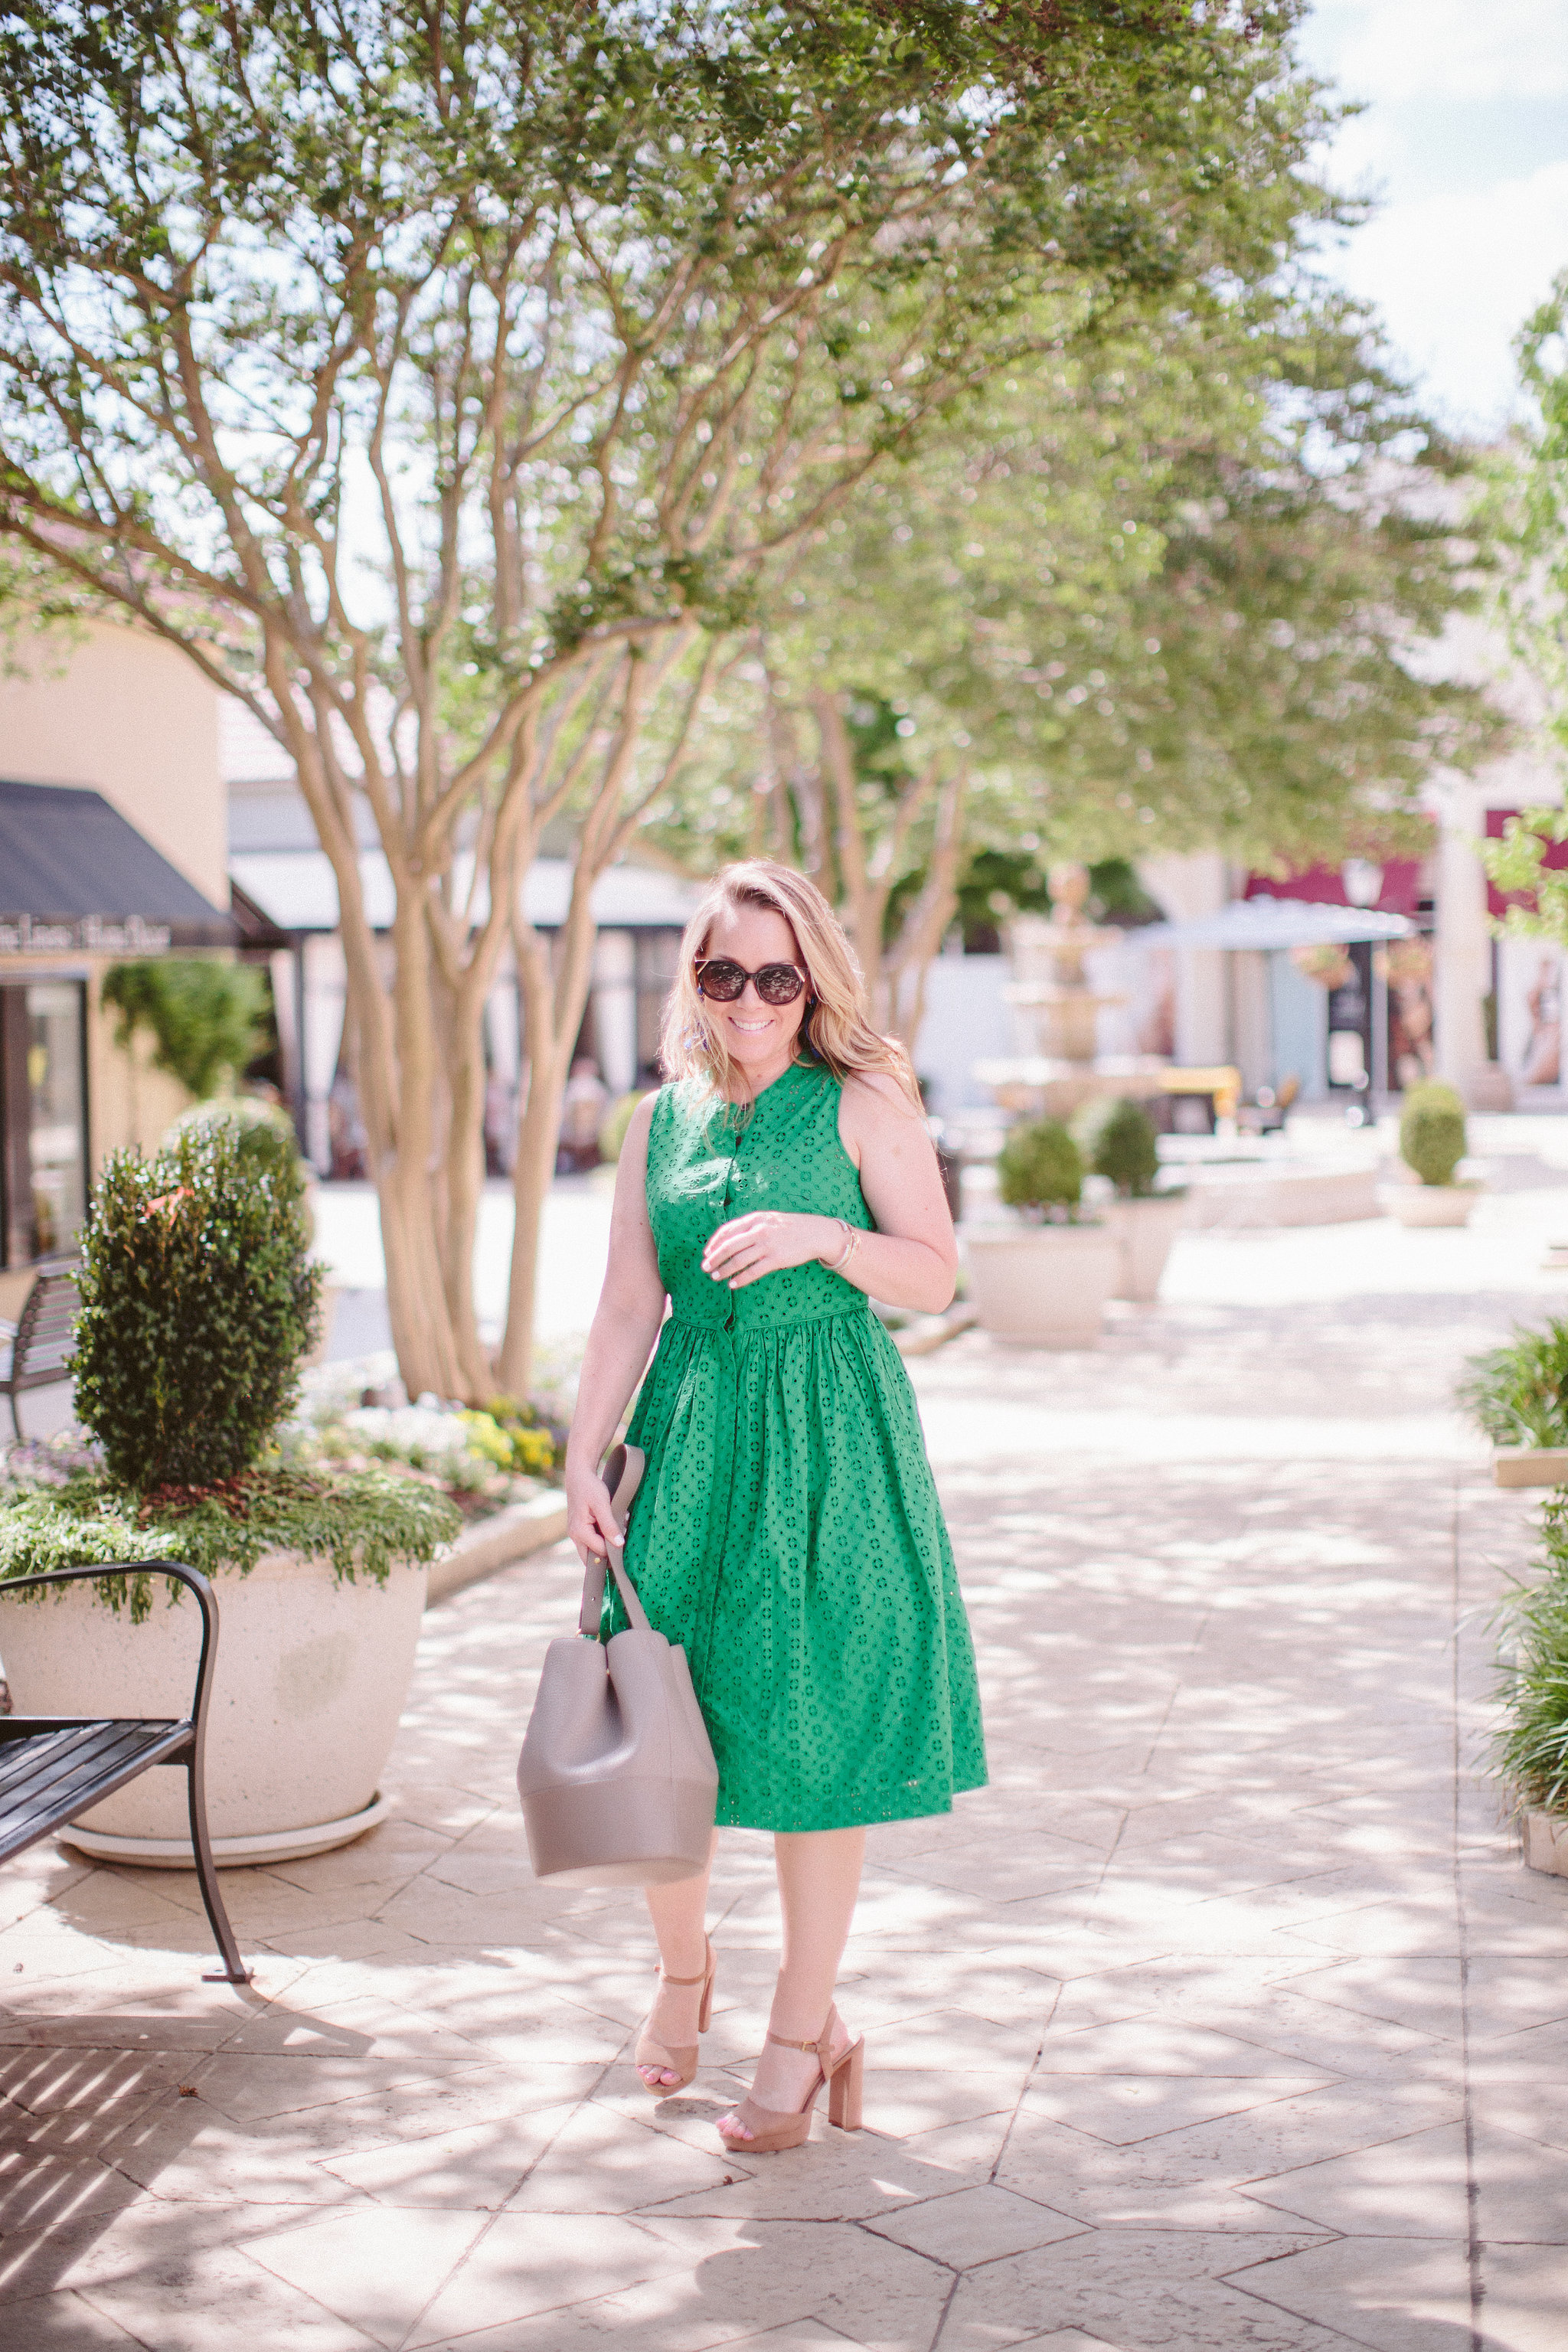 Eyelet Dress From J Crew My Style Every Chic Way